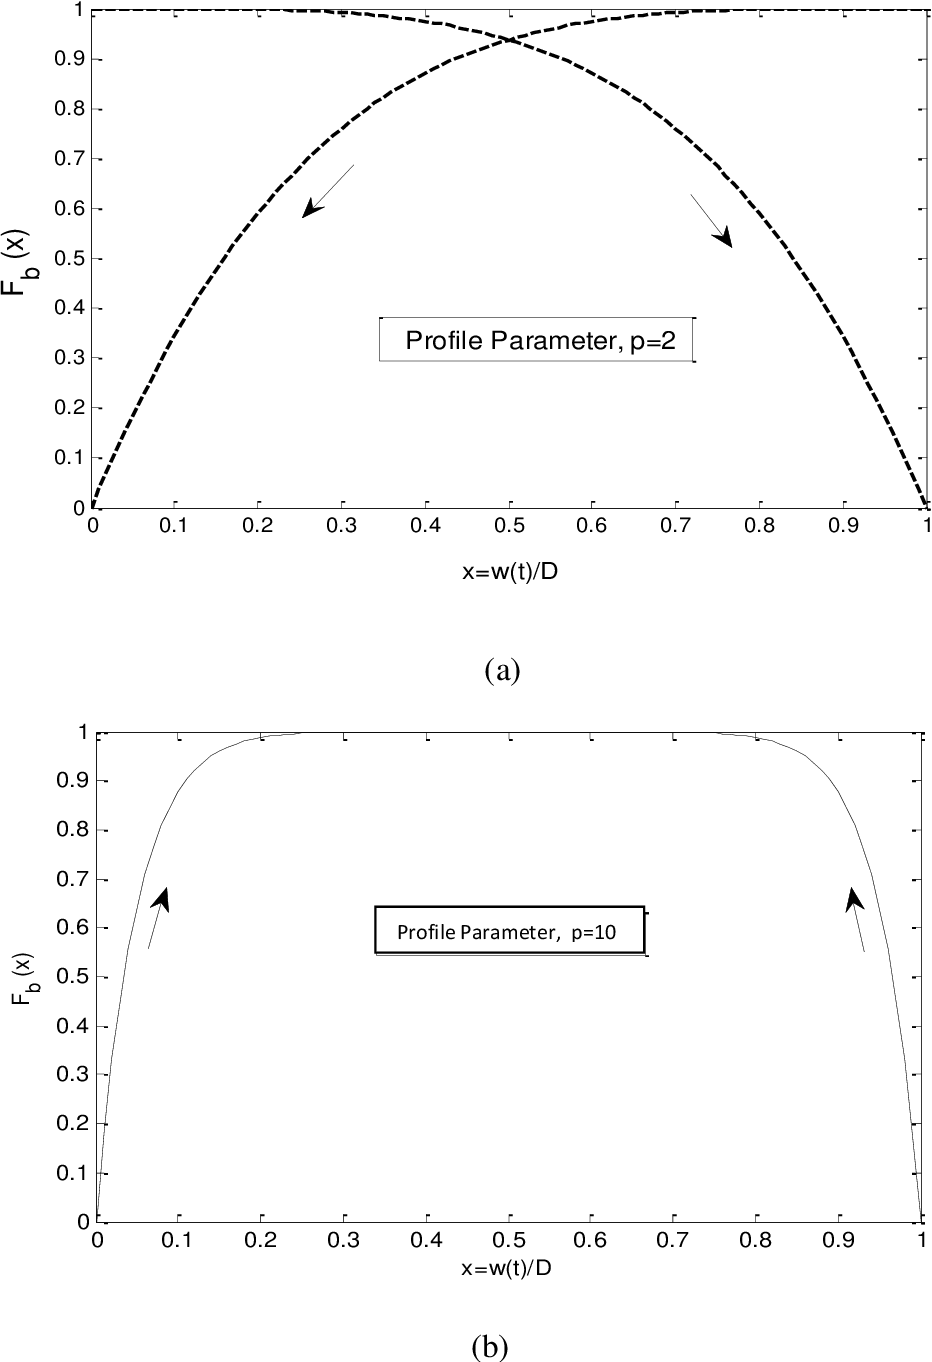 Figure 2.5: Biolek Window Function for nonlinear model [8] with profile parameter (a) p=2 and (b) p=10.